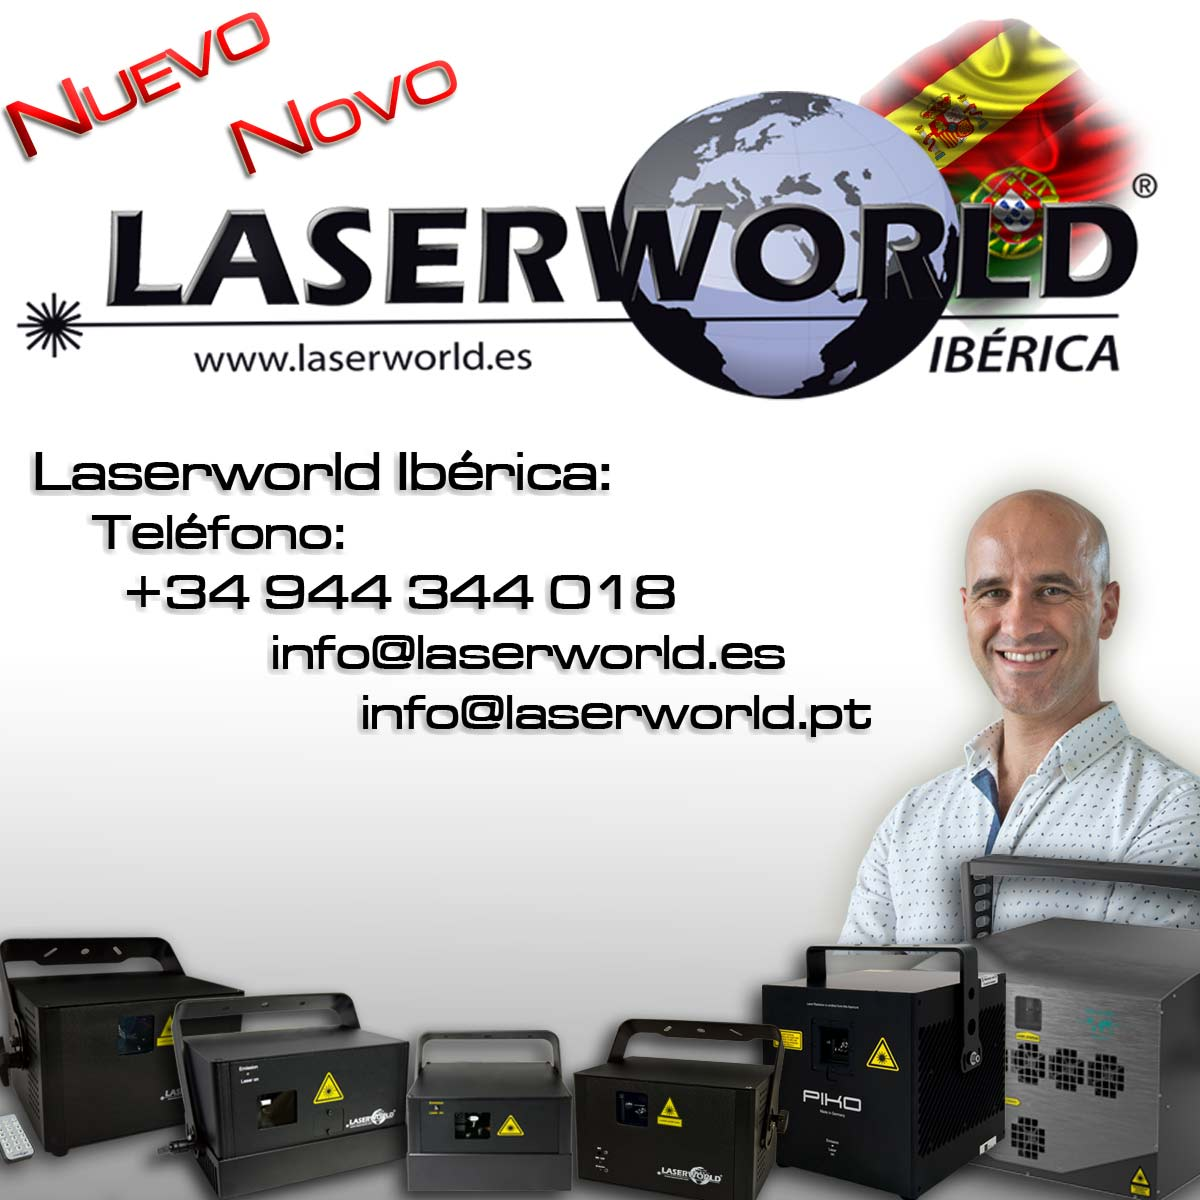 Introducing Laserworld Iberica projector